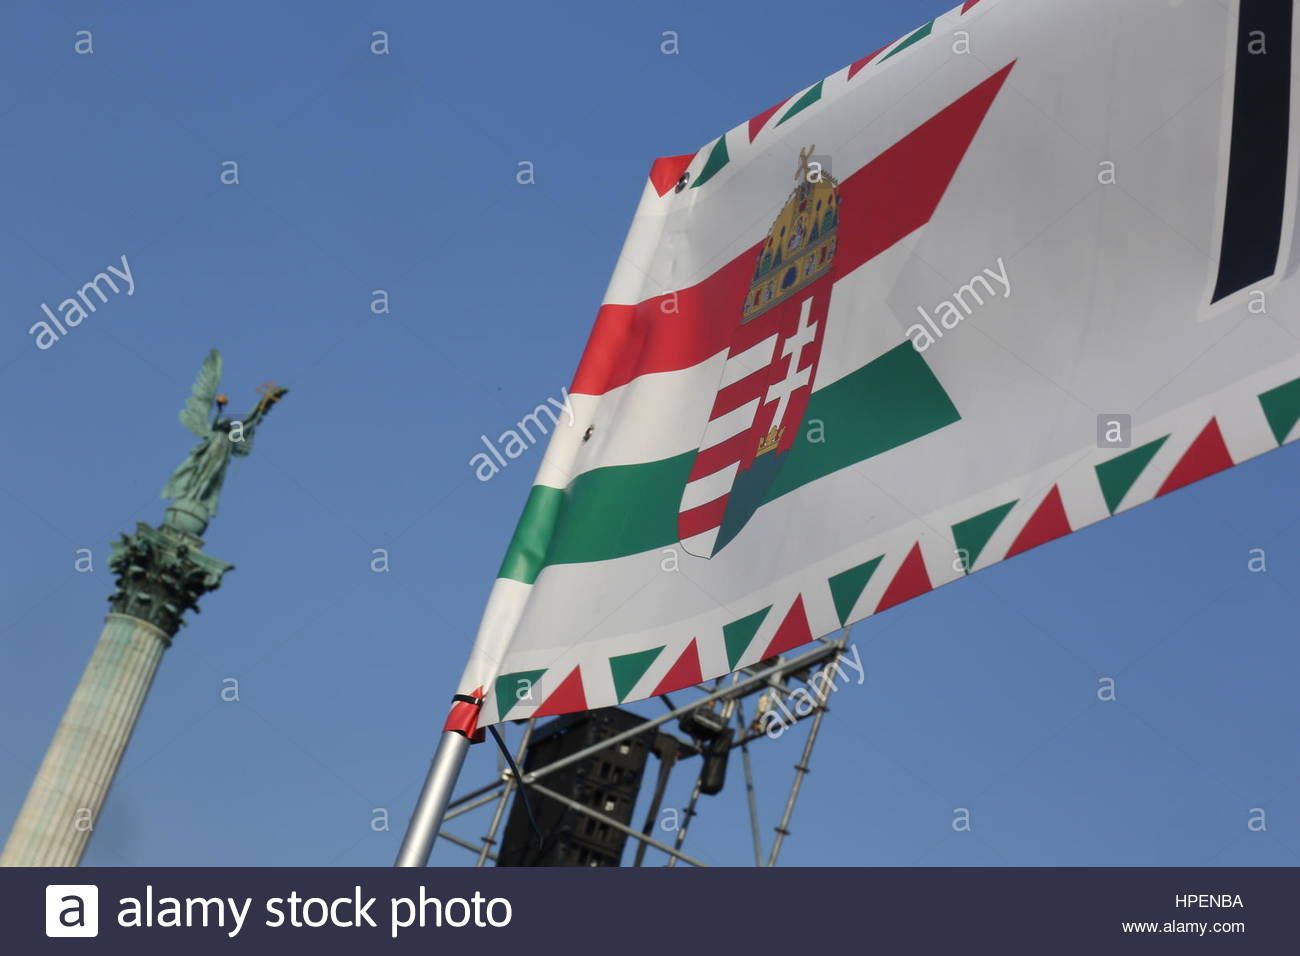 A Hungarian flag and the emblem of St Stephen hangs aloft in Heroes Square, Budapest Stock Photo